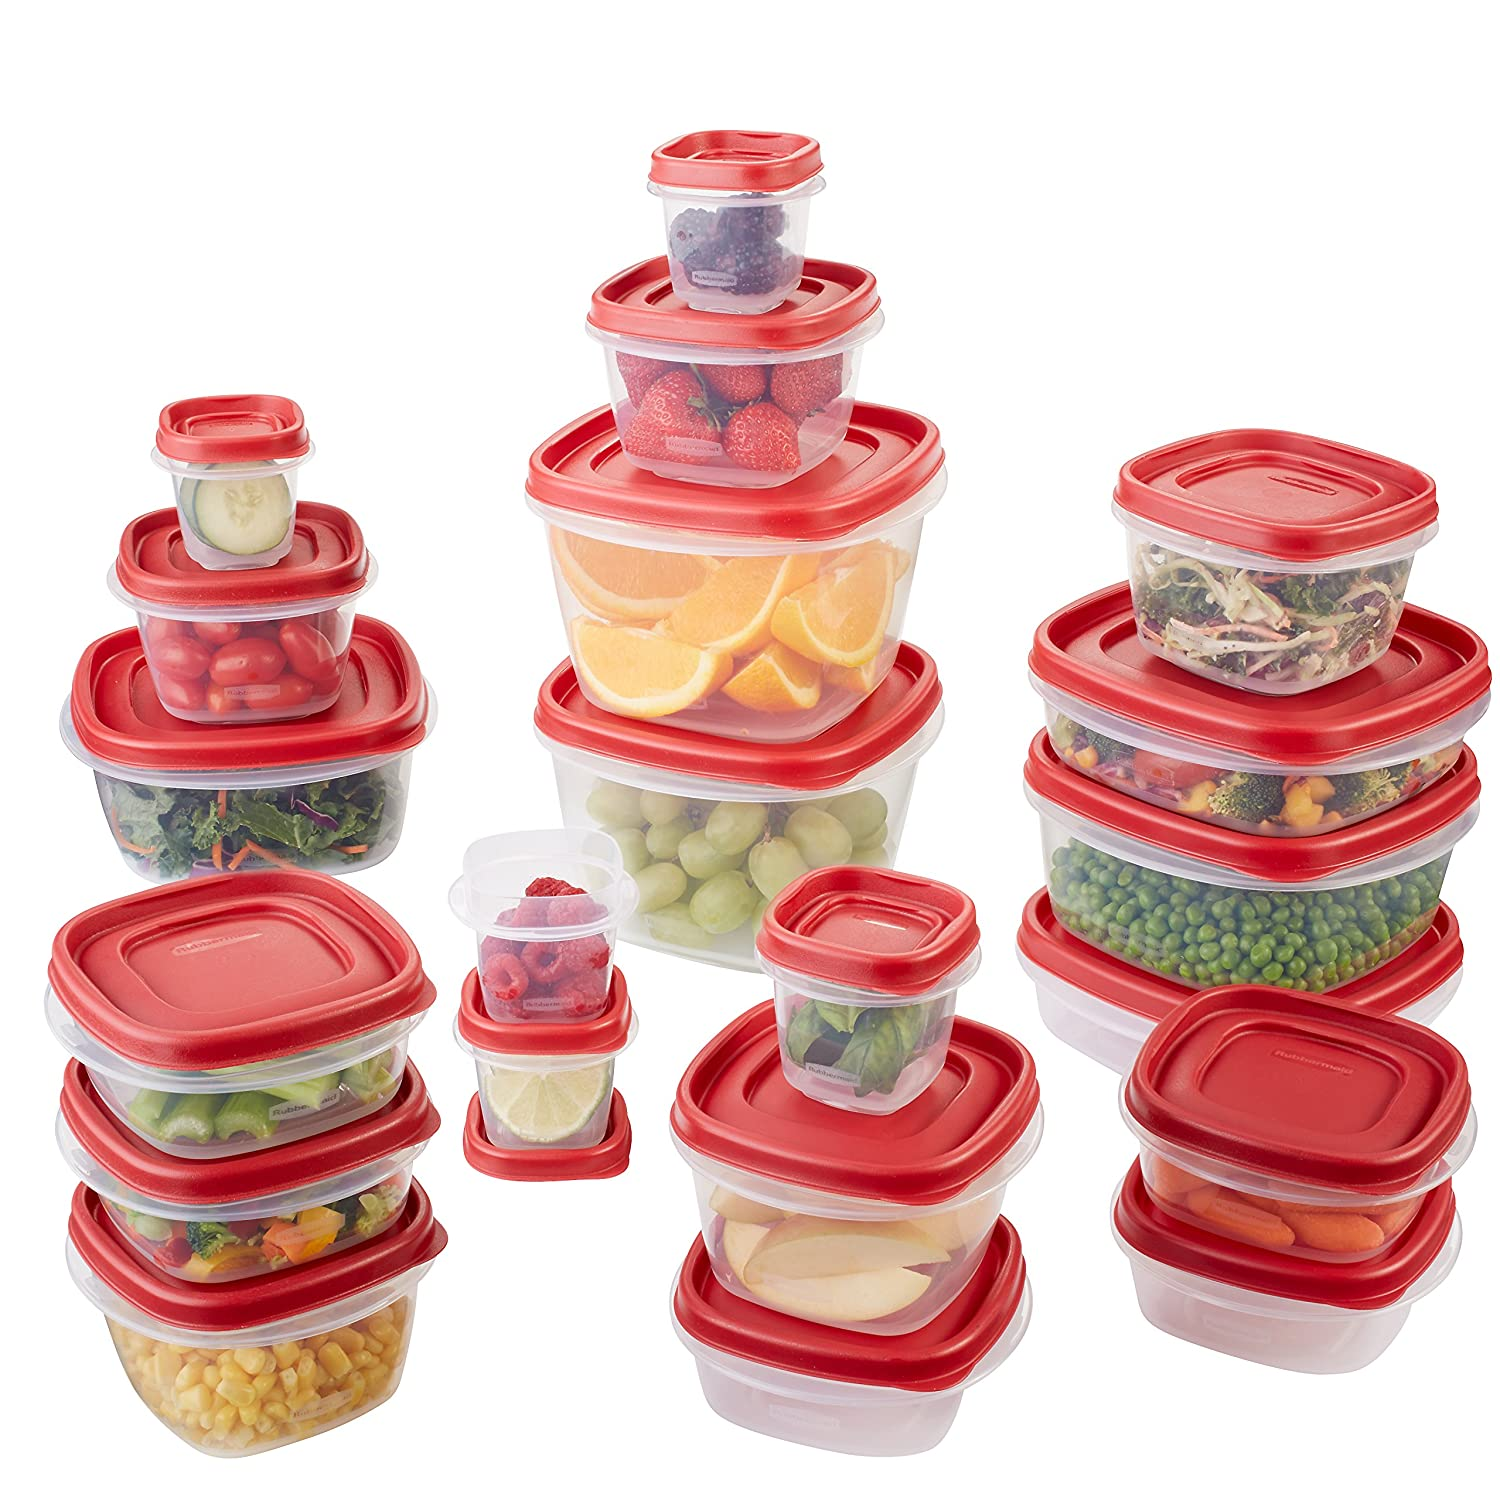 food storage | 13 Discount Kitchenware You Must Grab on Cyber Monday